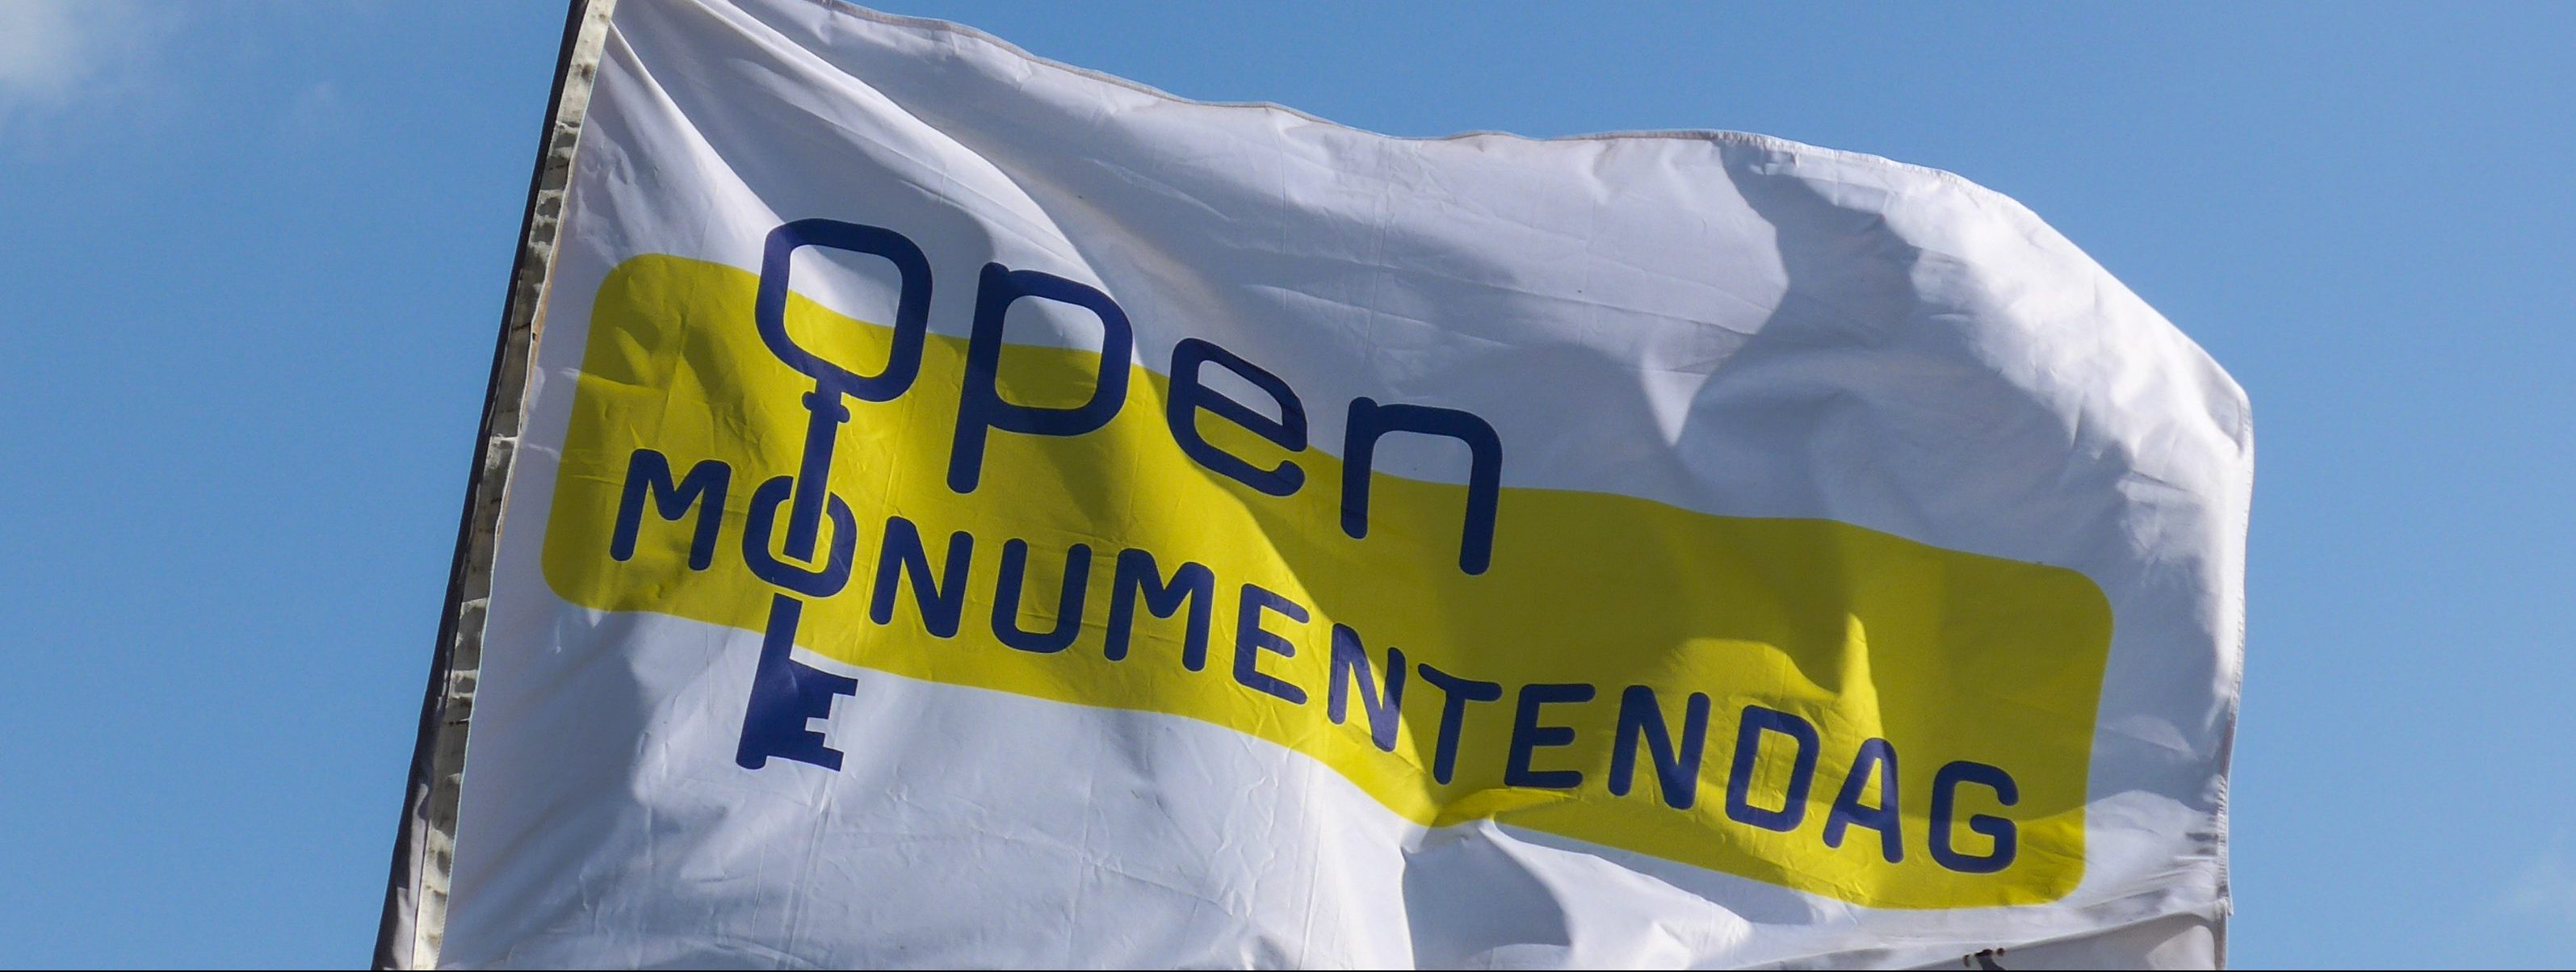 Open monumenten weekeind